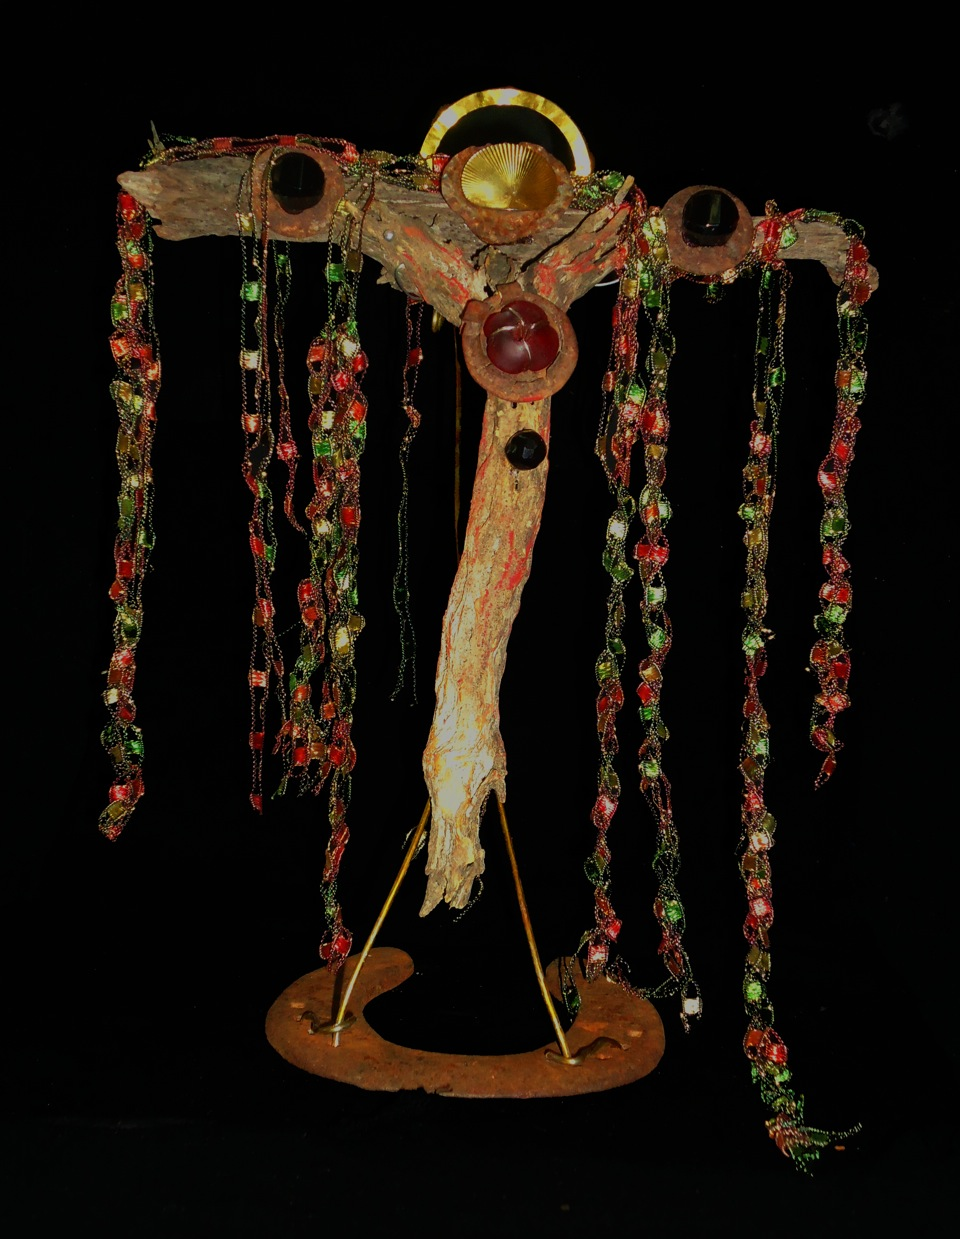 """""""The Weeping Tree"""" on Horseshoe Stand  mixed media, 10.5""""h x 8.5"""" w x 3.25"""" x 5.5""""d"""